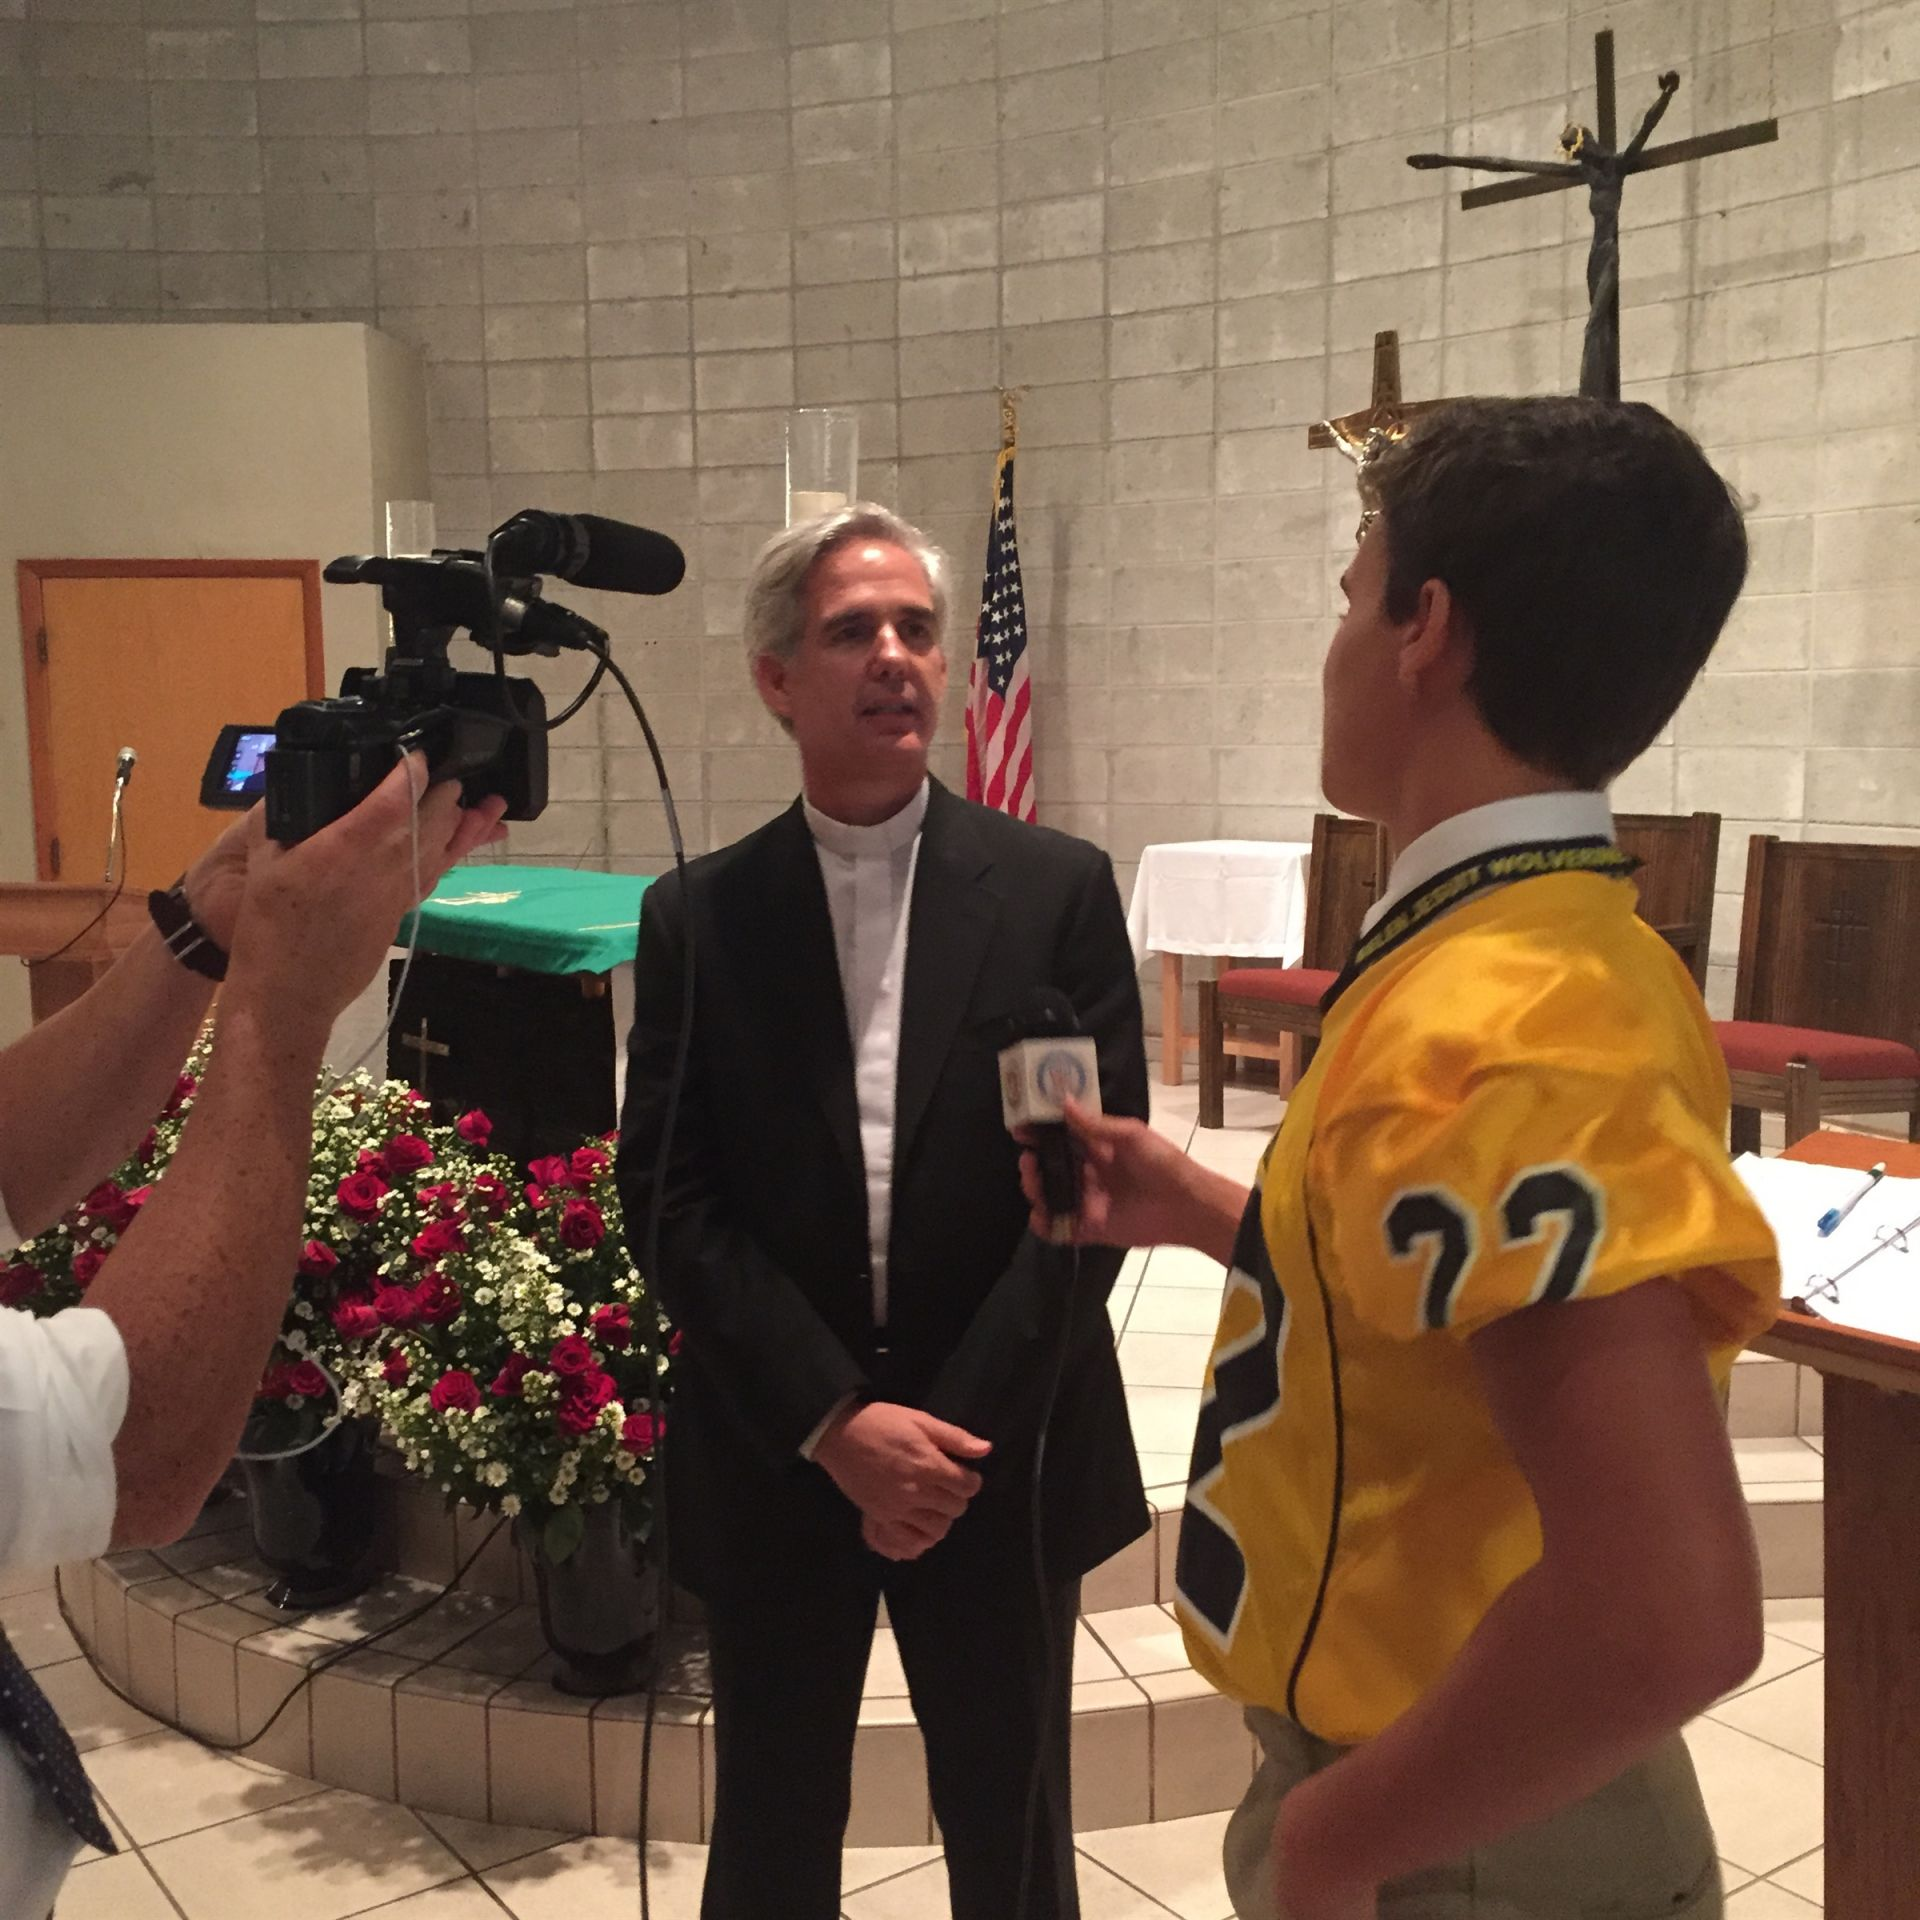 WBLN reporter Frankie Menendez interviews the Jesuit Provincial of the Antilles Province Javier Vidal.